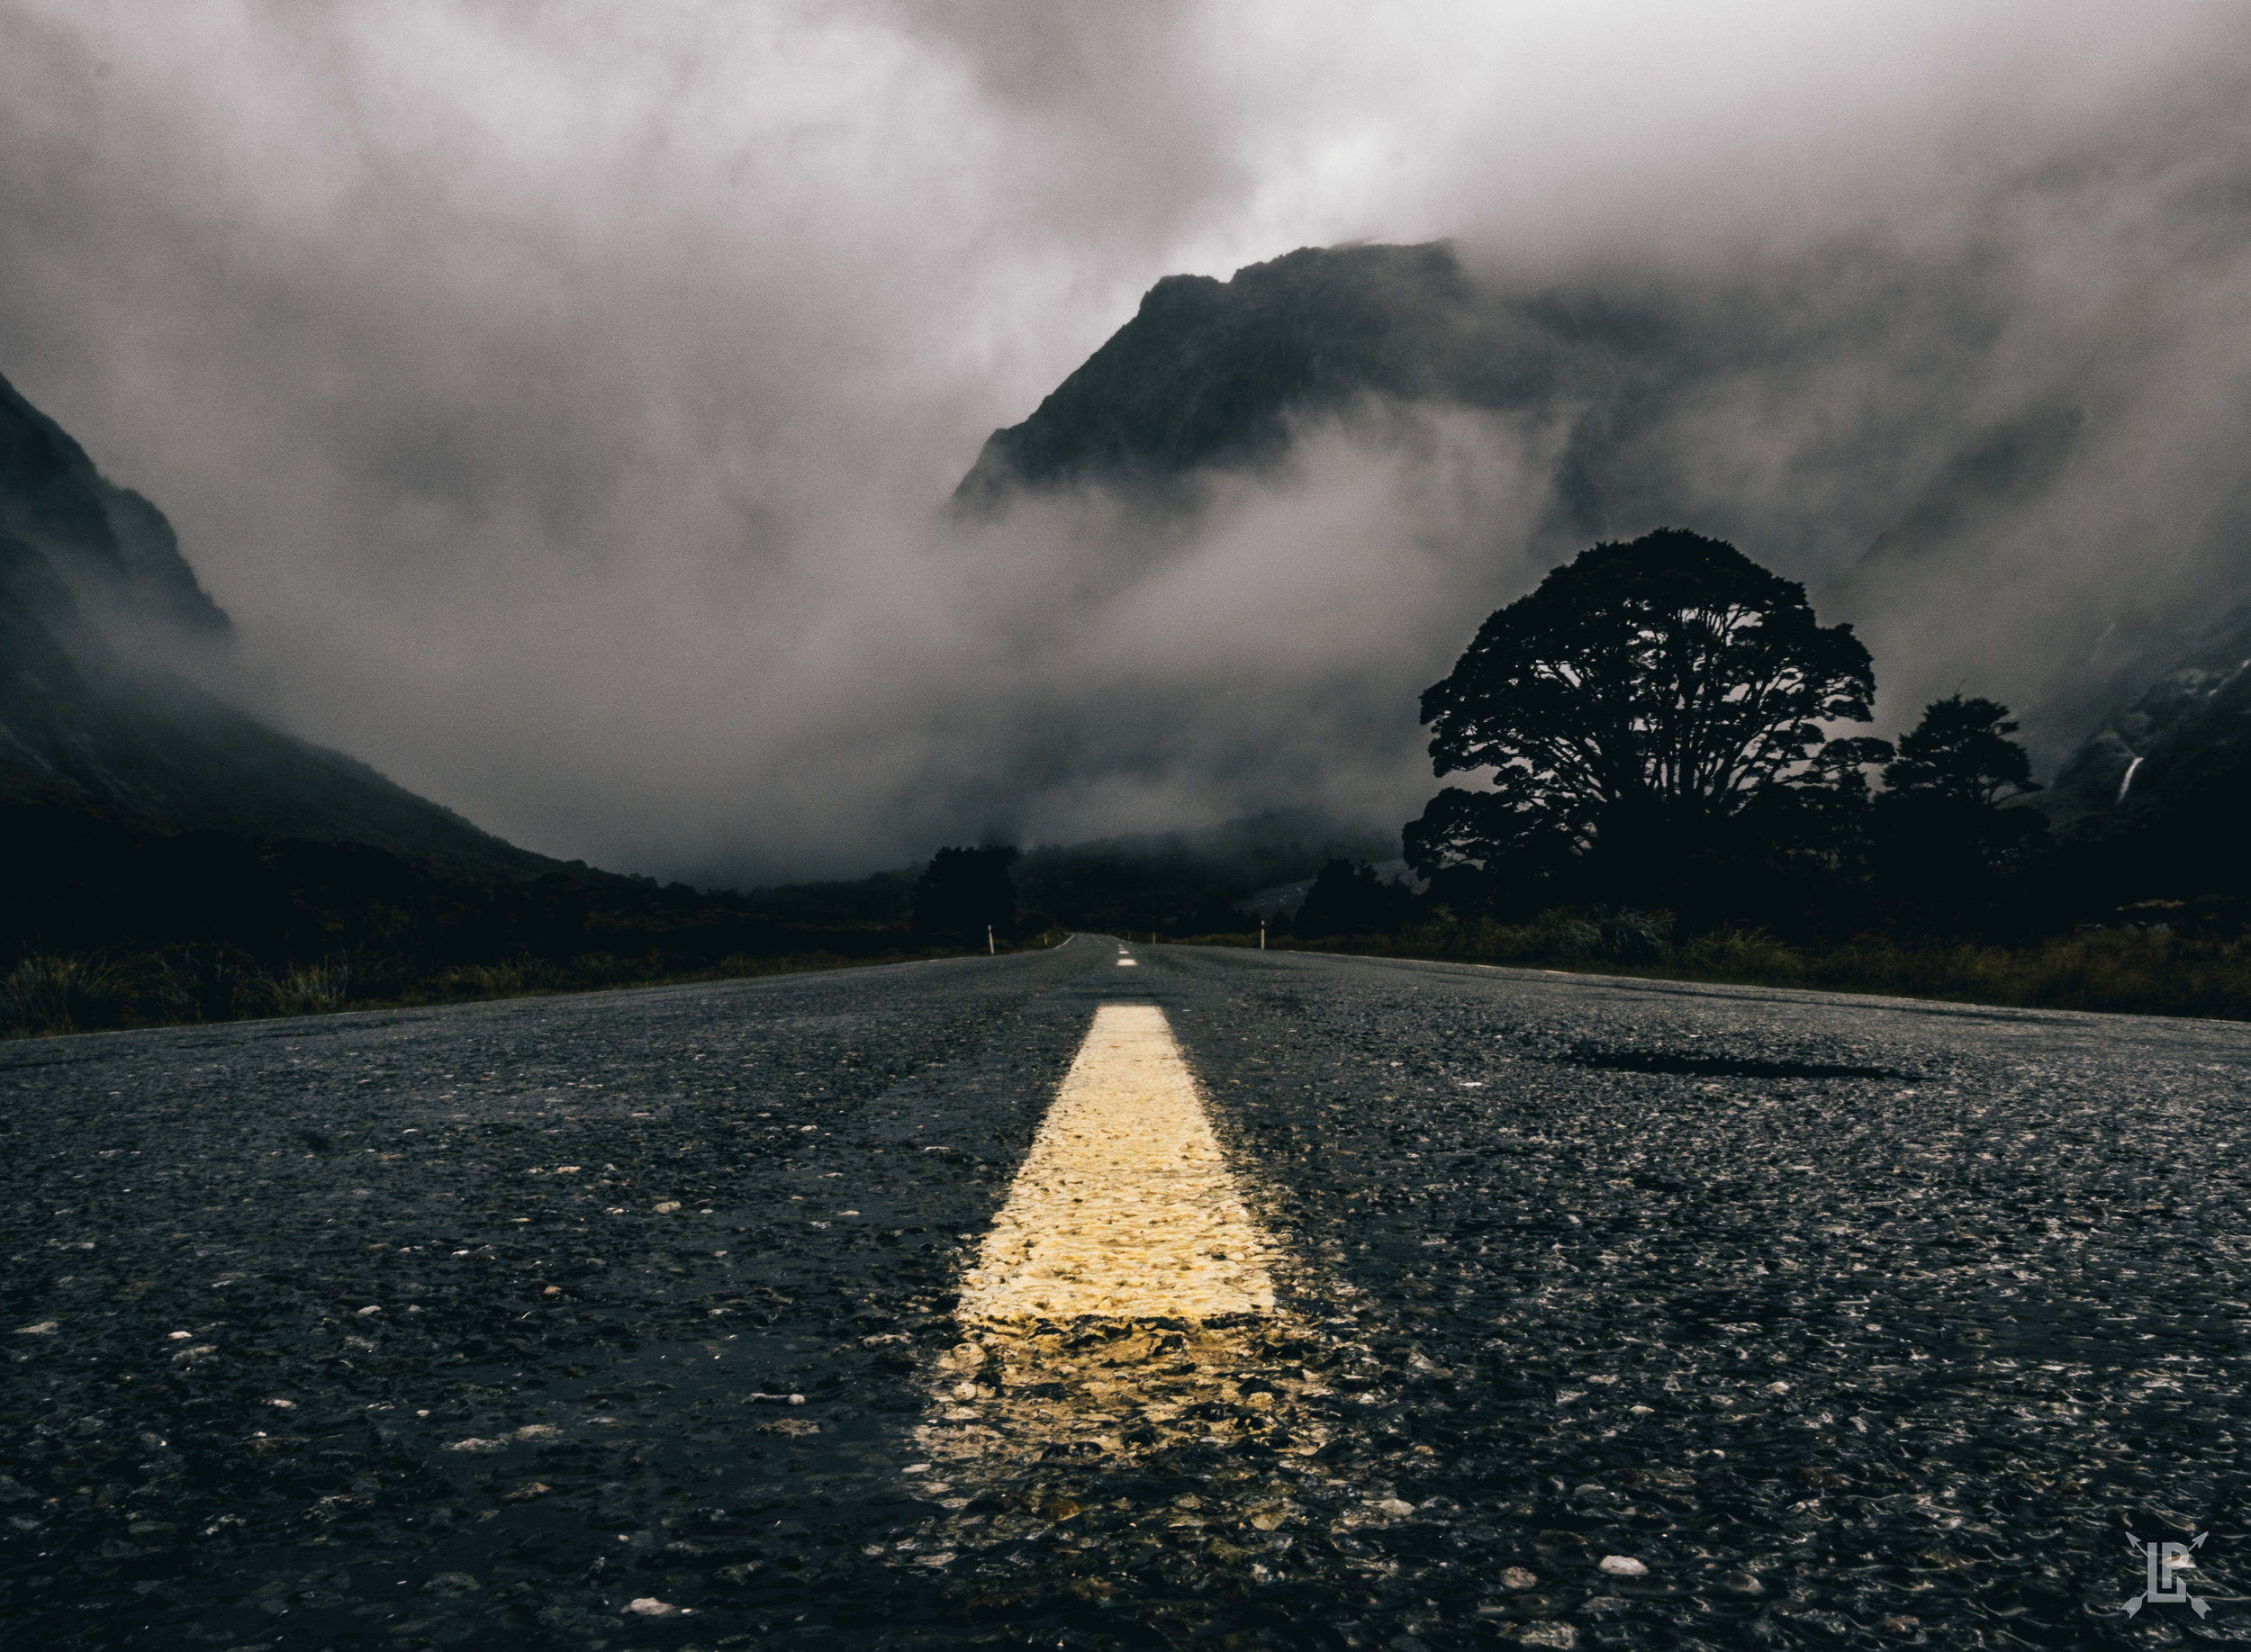 Taken on the road leading to Milford Sound with the  Sony a6500 , Zeiss 16-70mm lens.